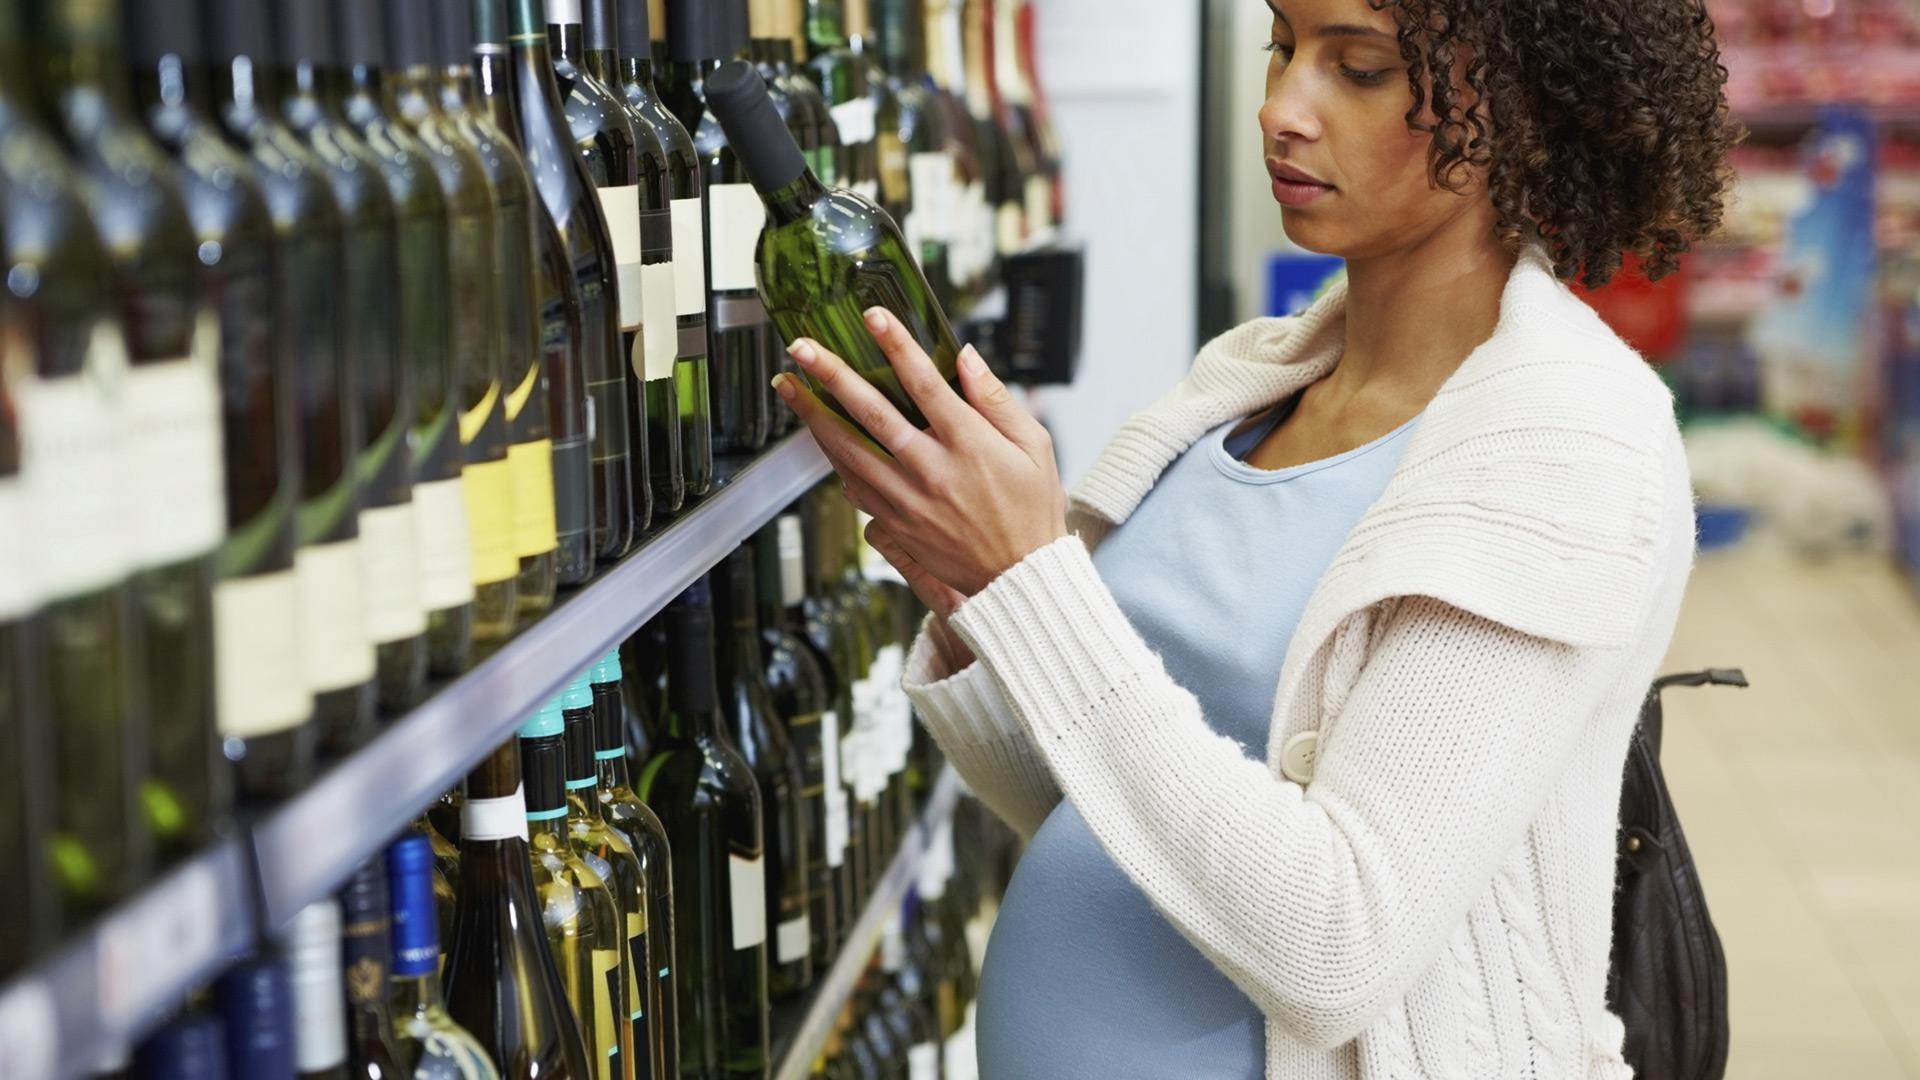 Drinking Alcohol Did Not Know I Was Pregnant